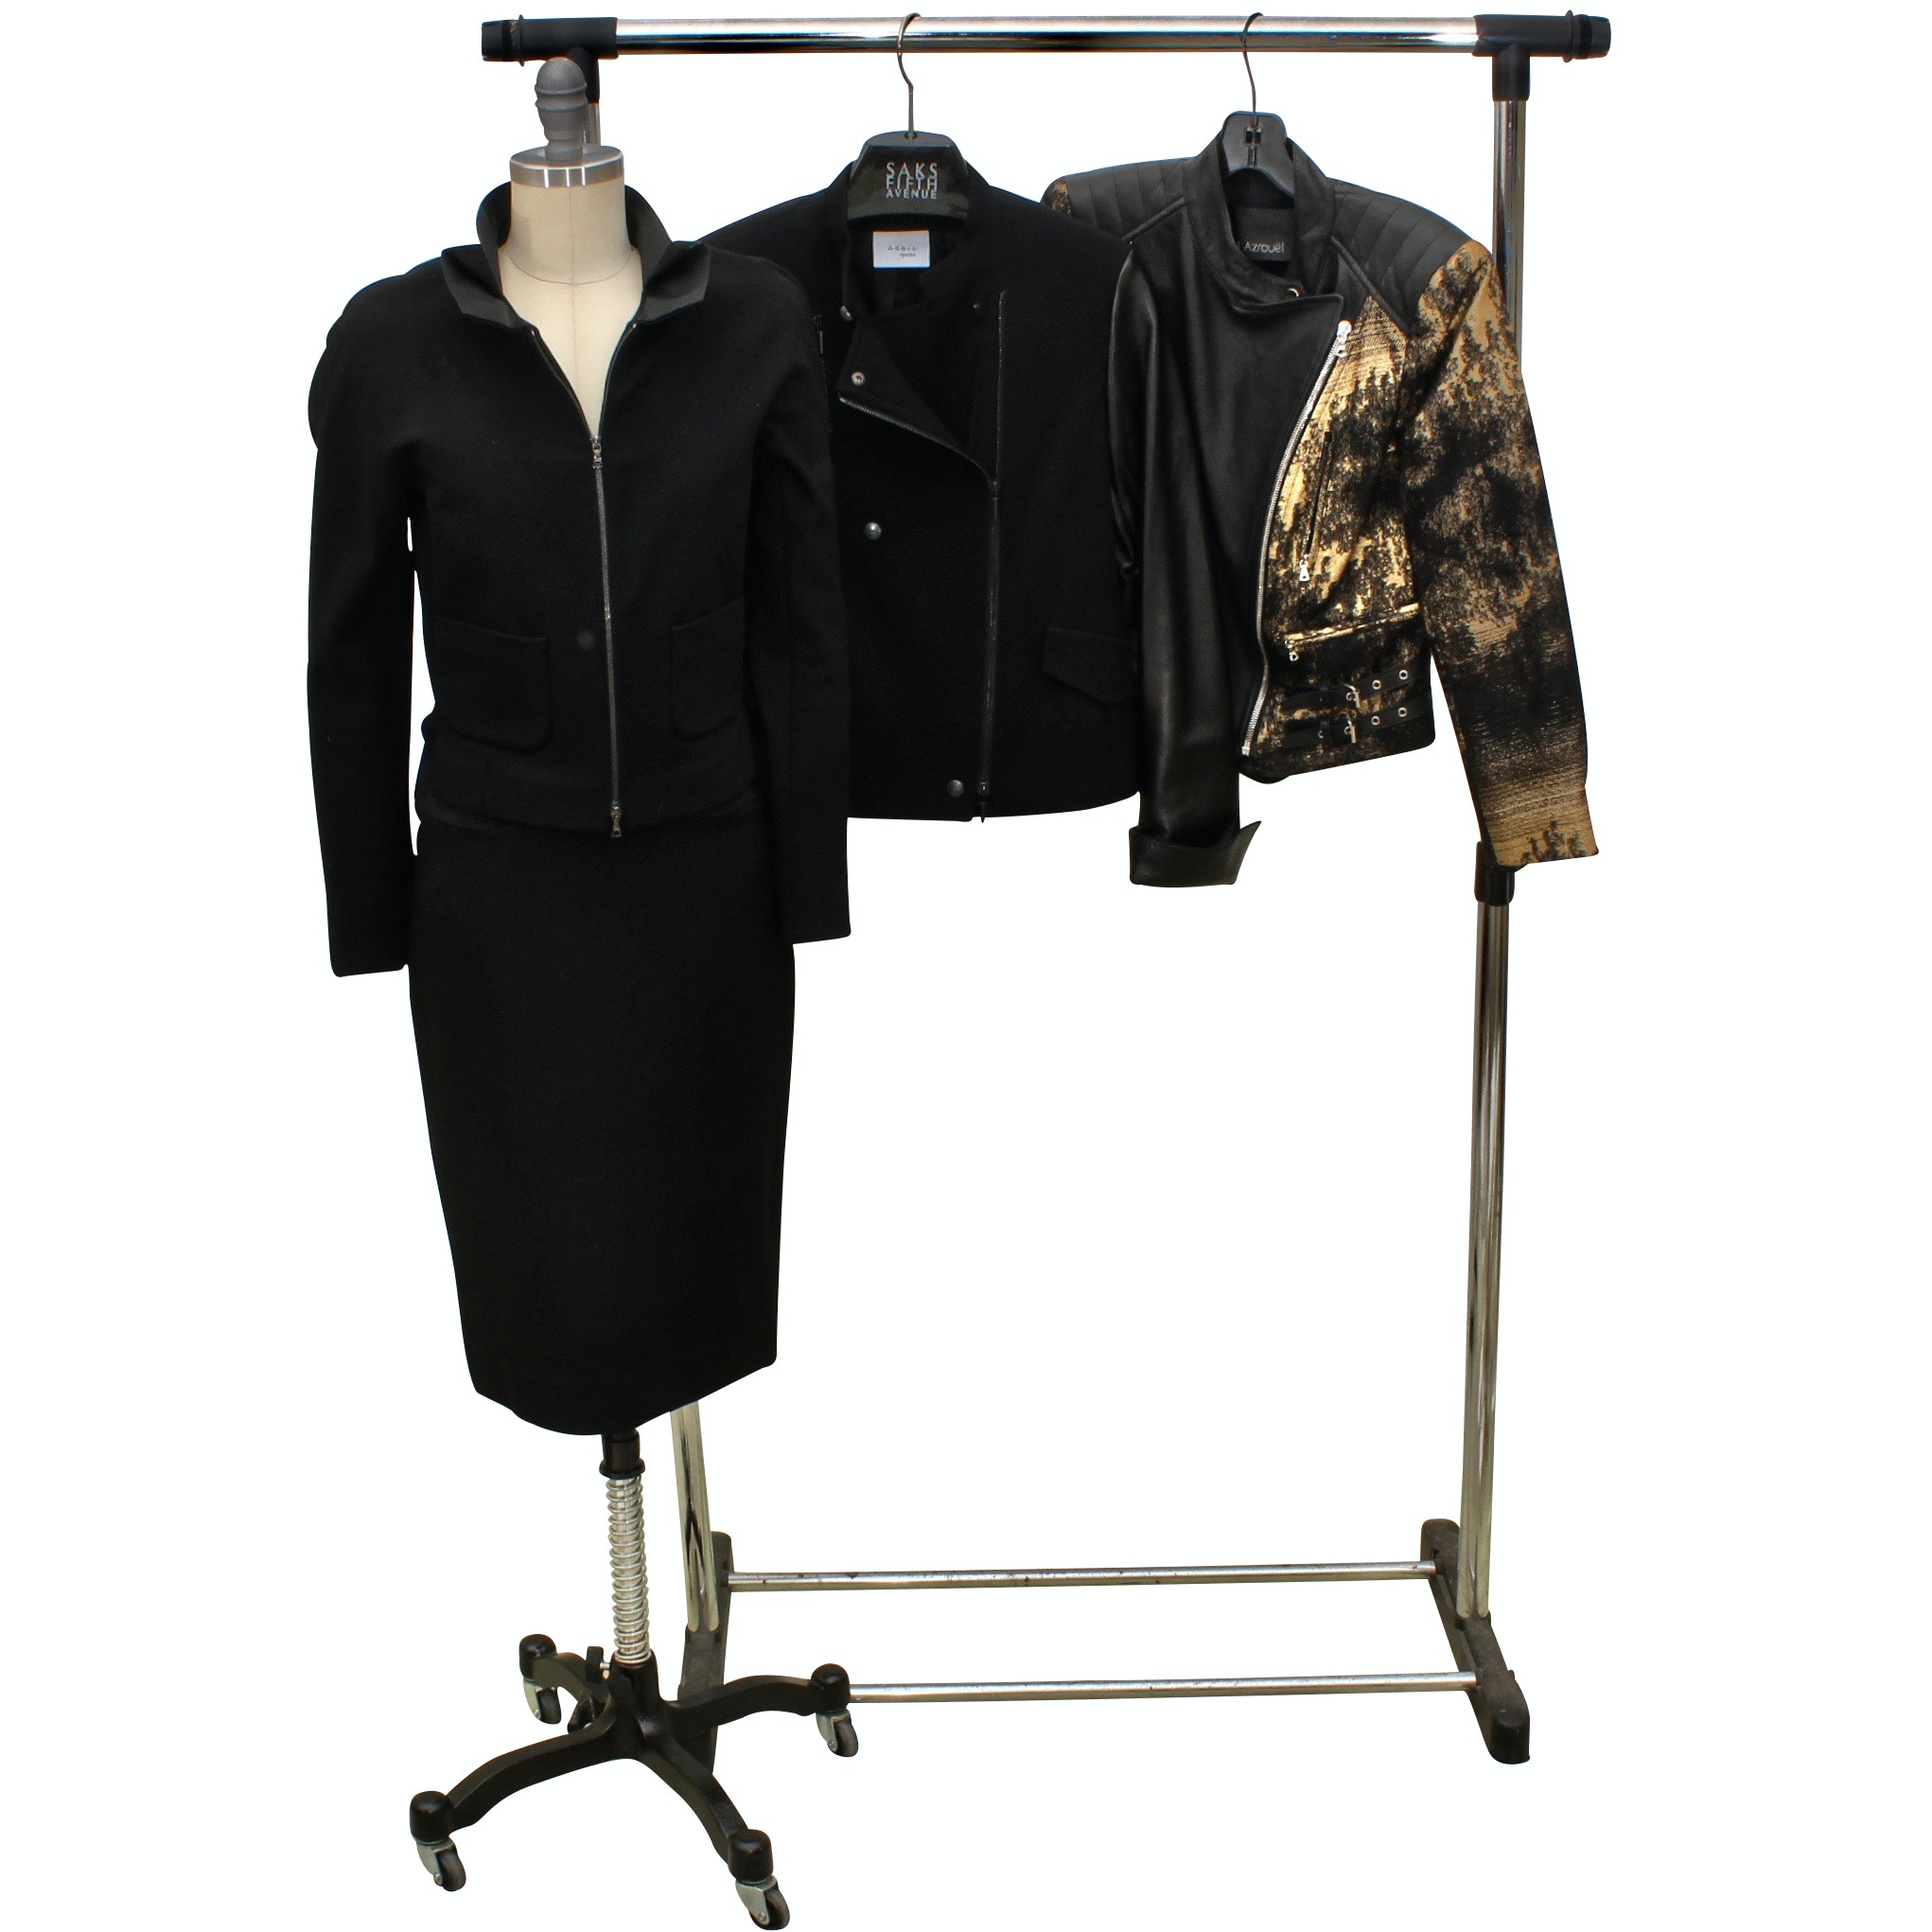 Women's Outerwear and Separates Including Yigal Azrouel, Akris and Lida Baday